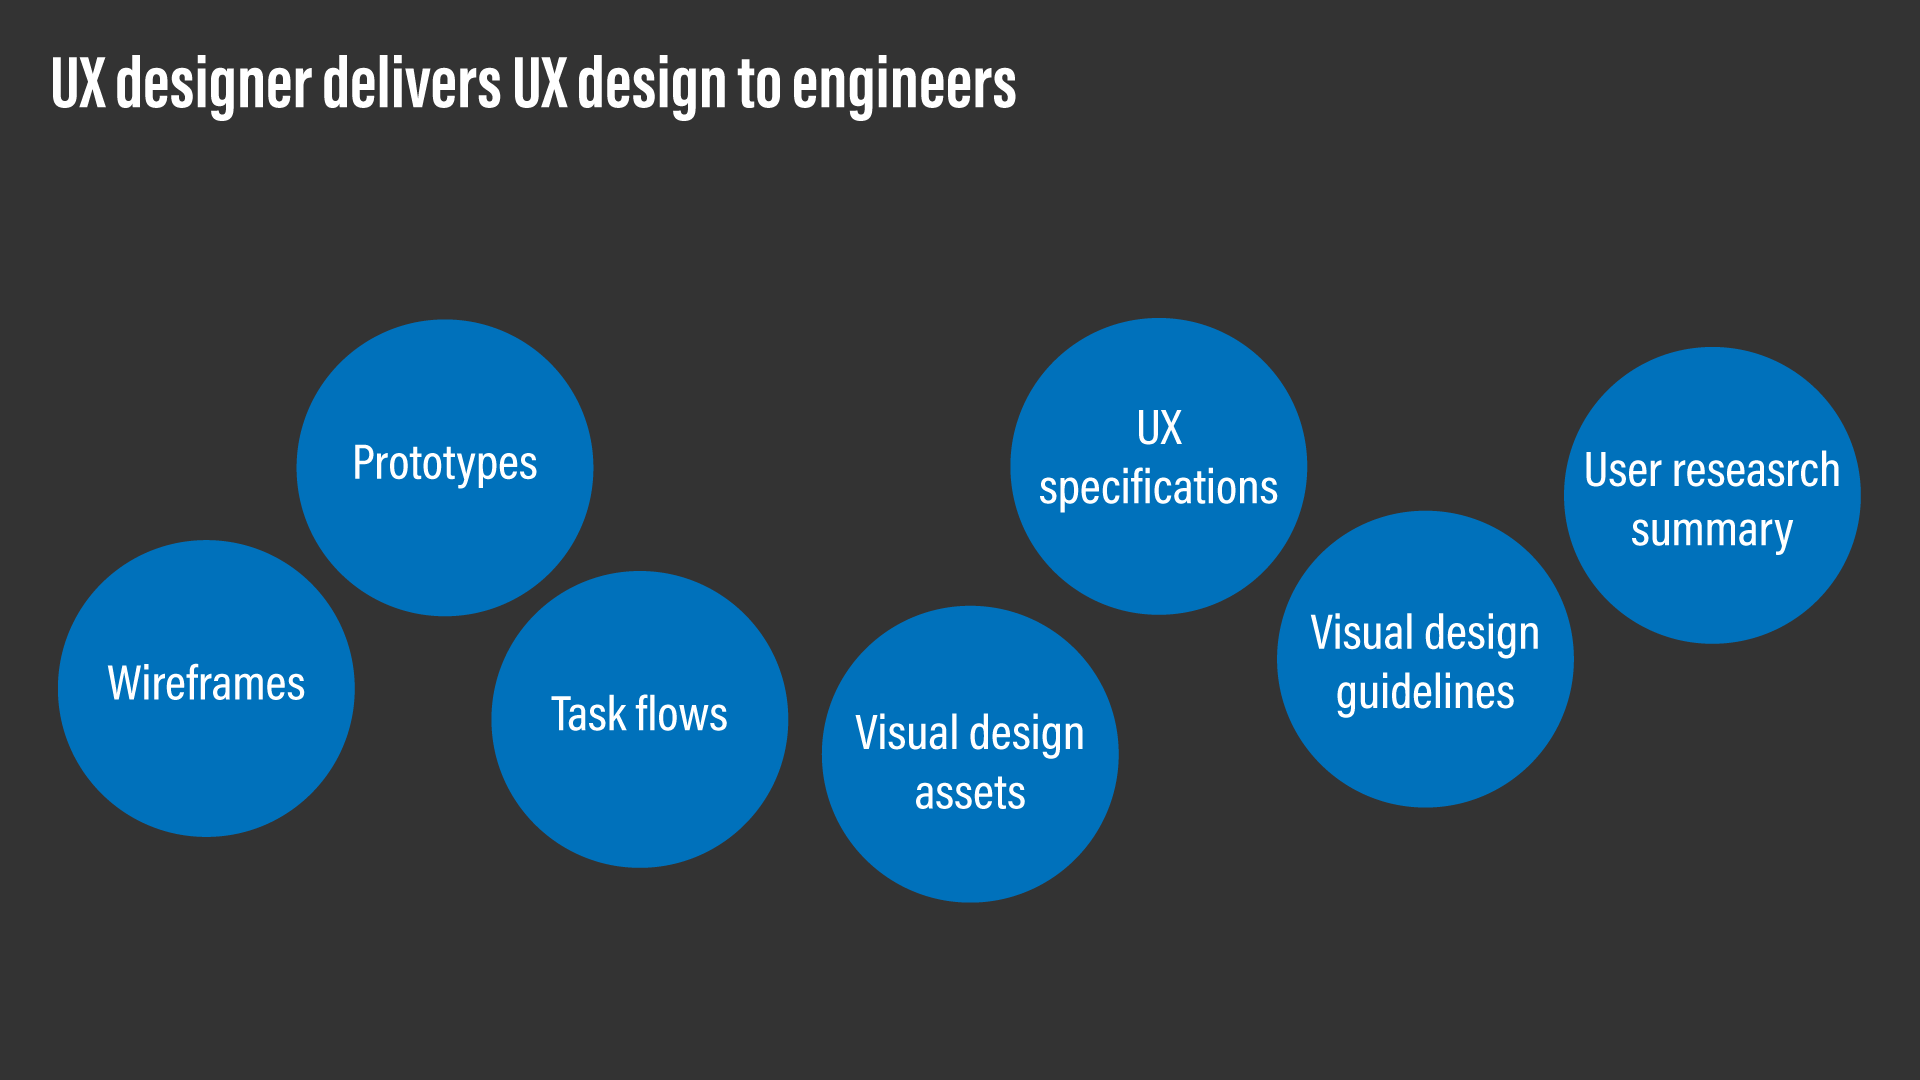 A diagram showing examples of typical UX design deliverables.